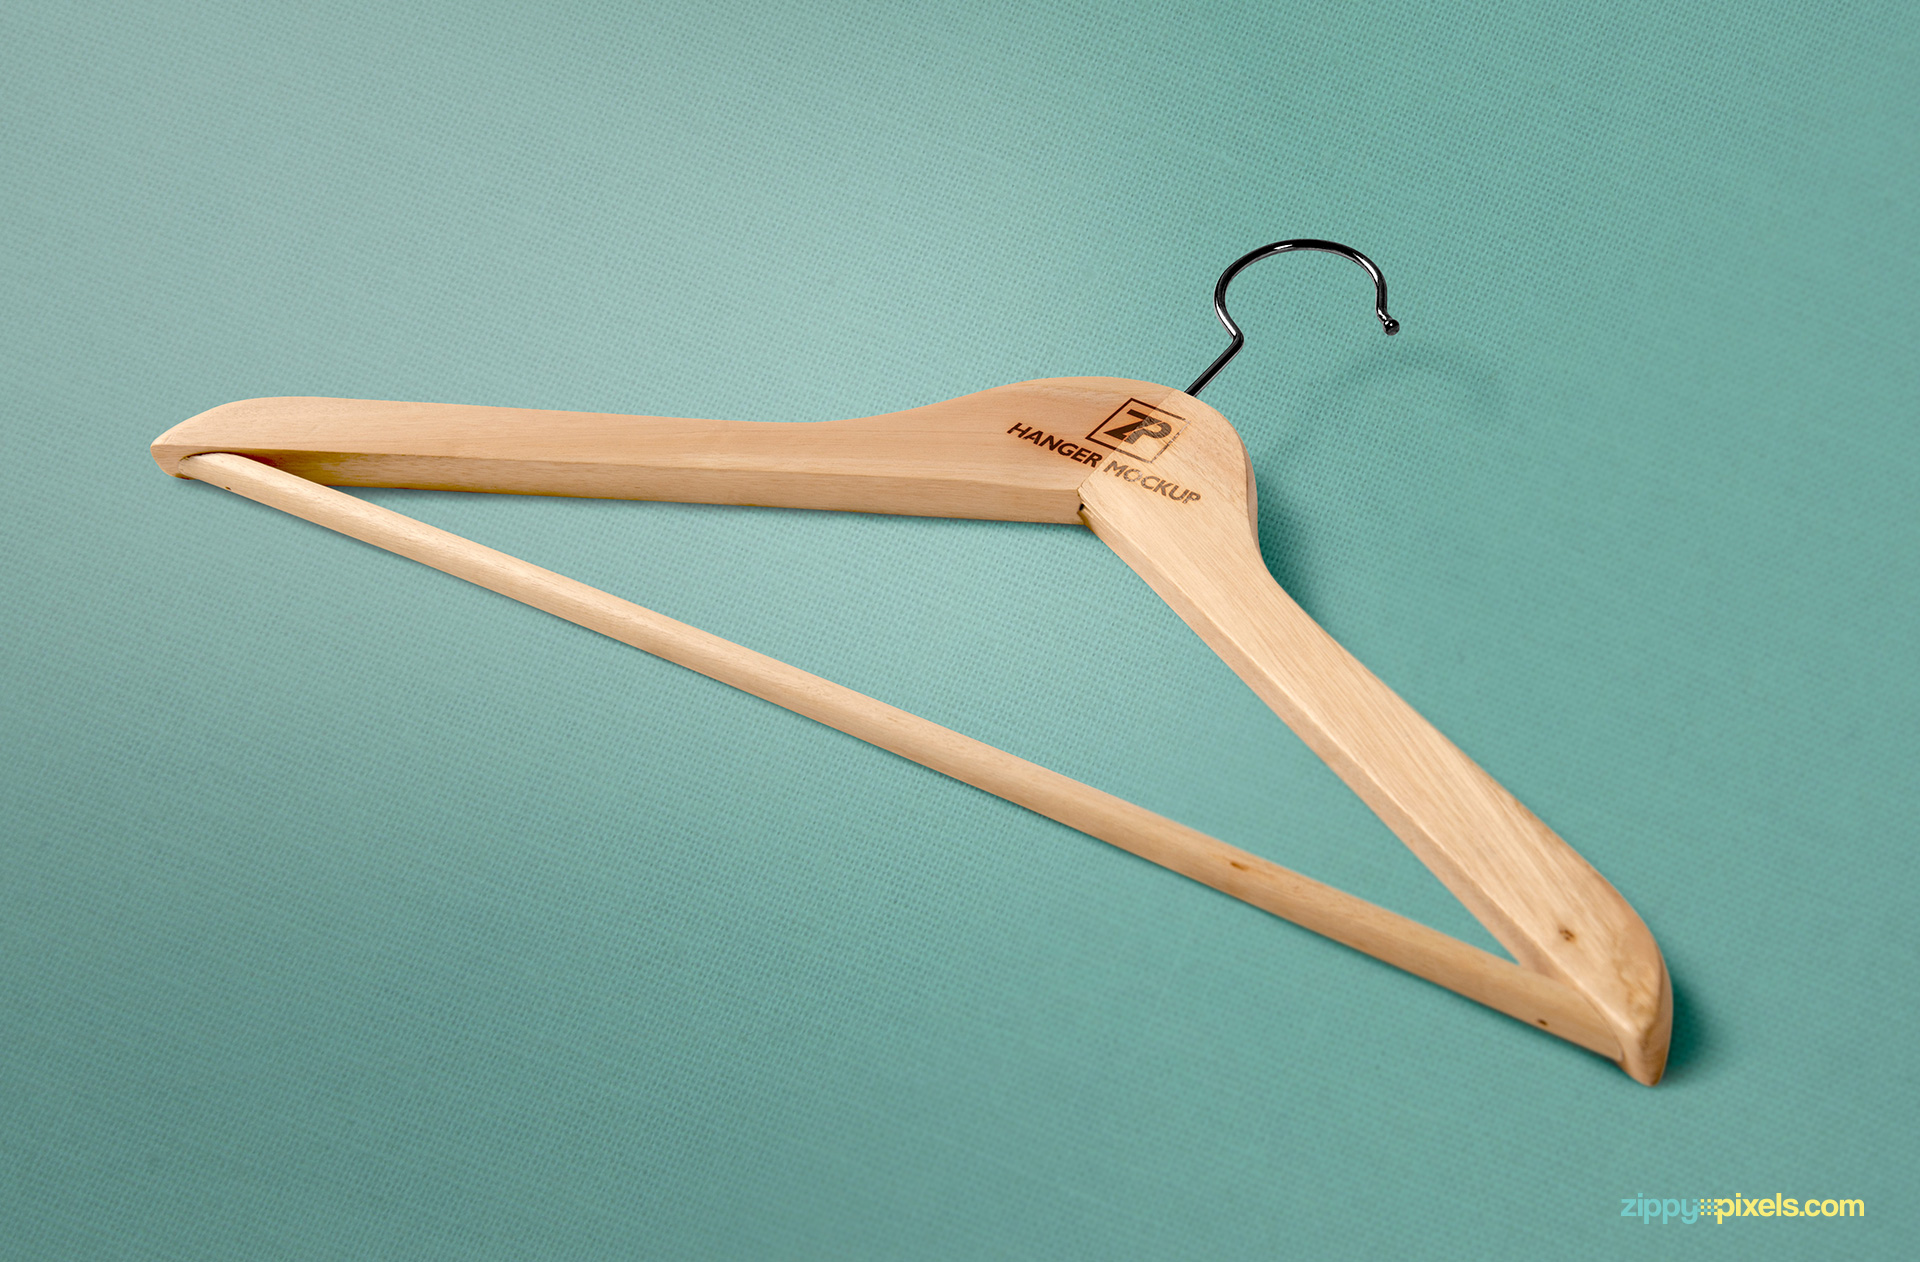 Free high-quality wooden hanger mockup psd.